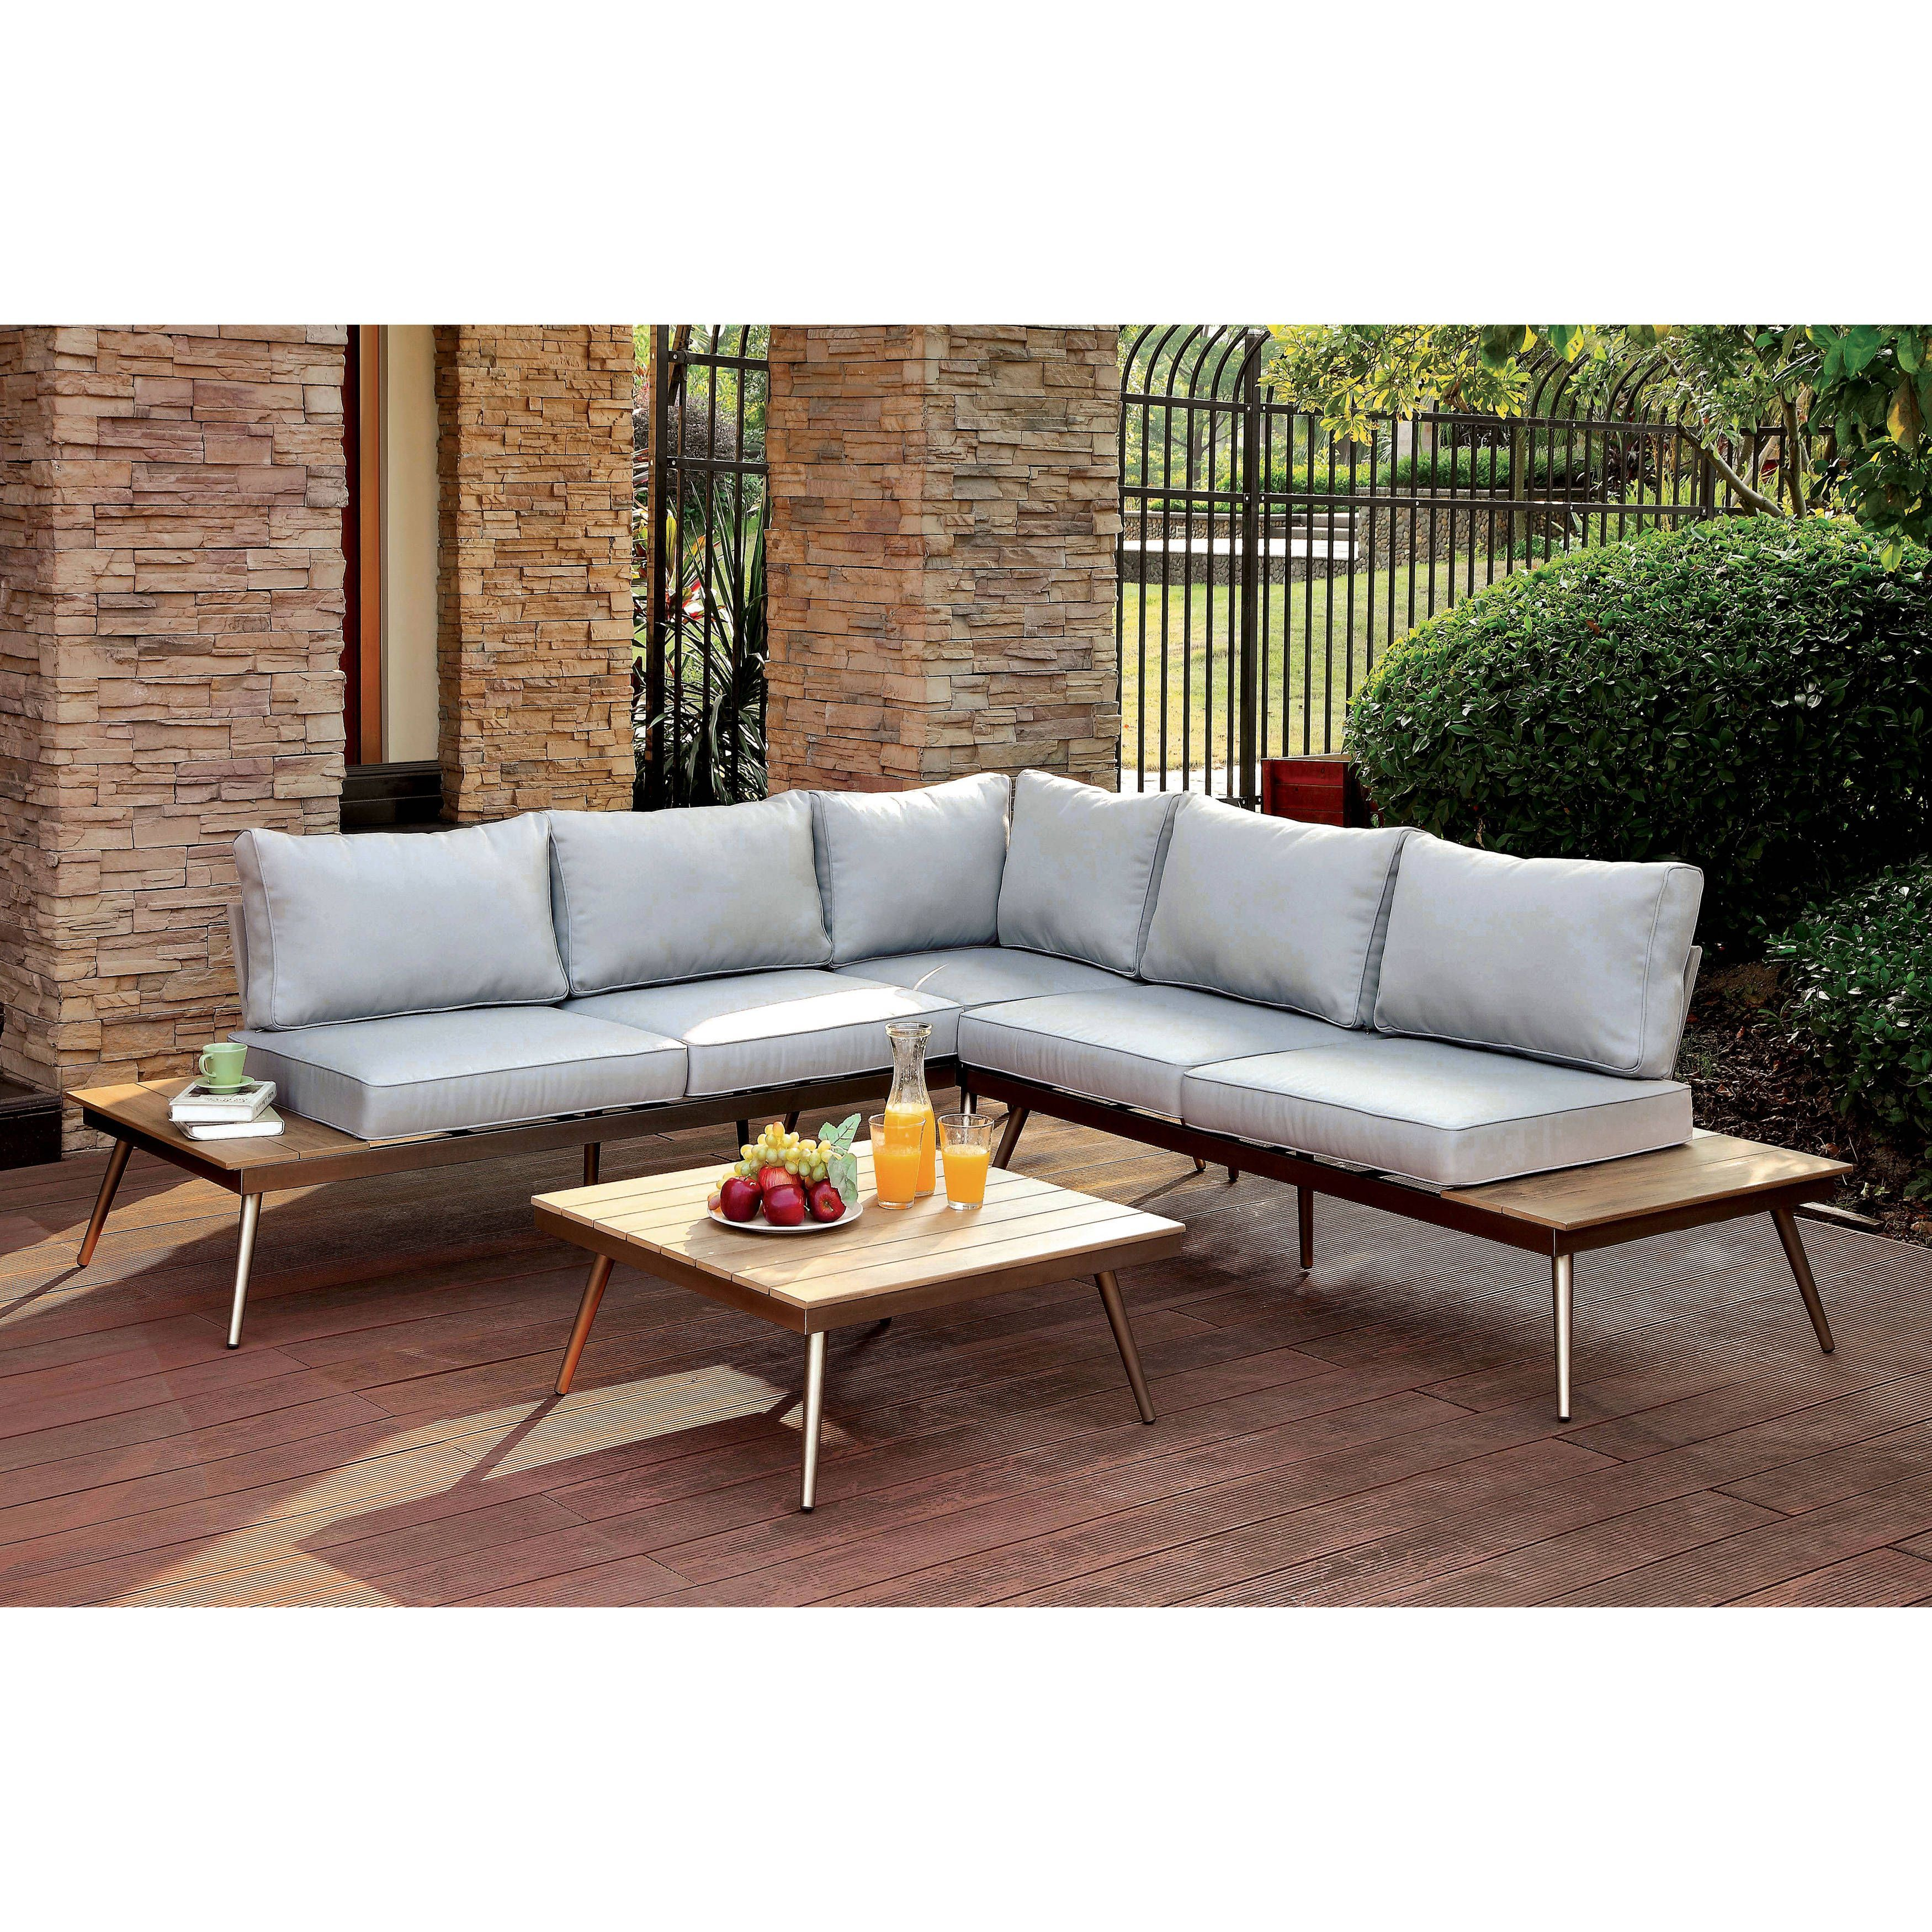 full circular sofas of comfy loveseat sofa patio modular furniture couch size modern contemporary outdoor